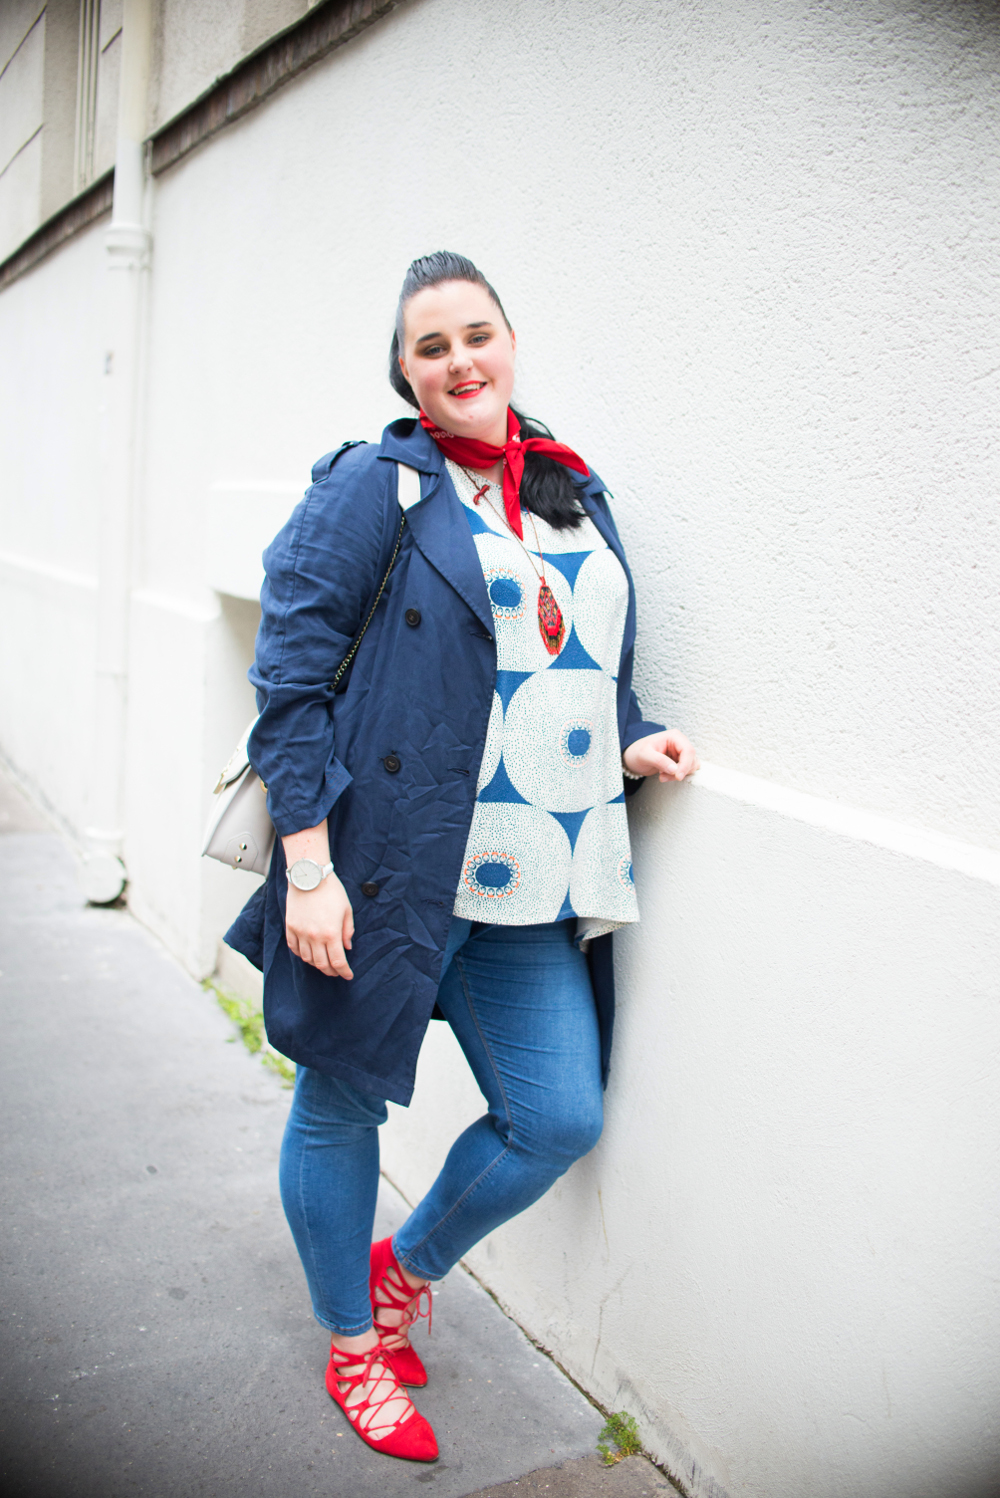 1ac9d4c1 Top oversize Kim / Electric Eye Beth Ditto / Jeans Asos Curve / Trench  Fluide BALSAMIK (offert) / Chaussures Asos (sold out) / Bandana Vintage /  Collier ...